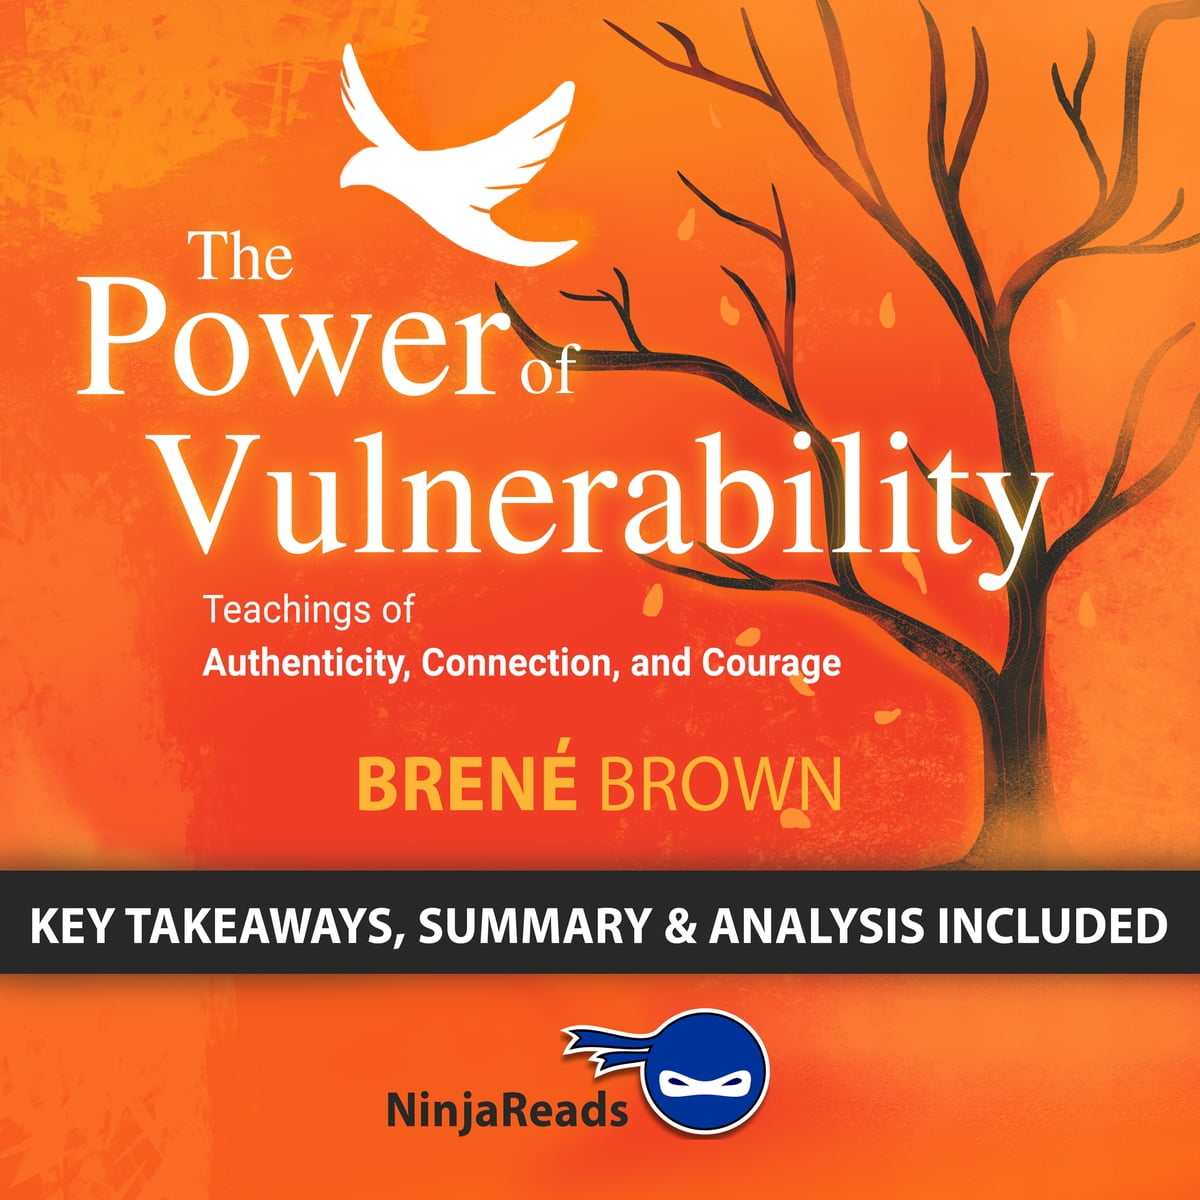 The Power of Vulnerability:Teachings of Authenticity